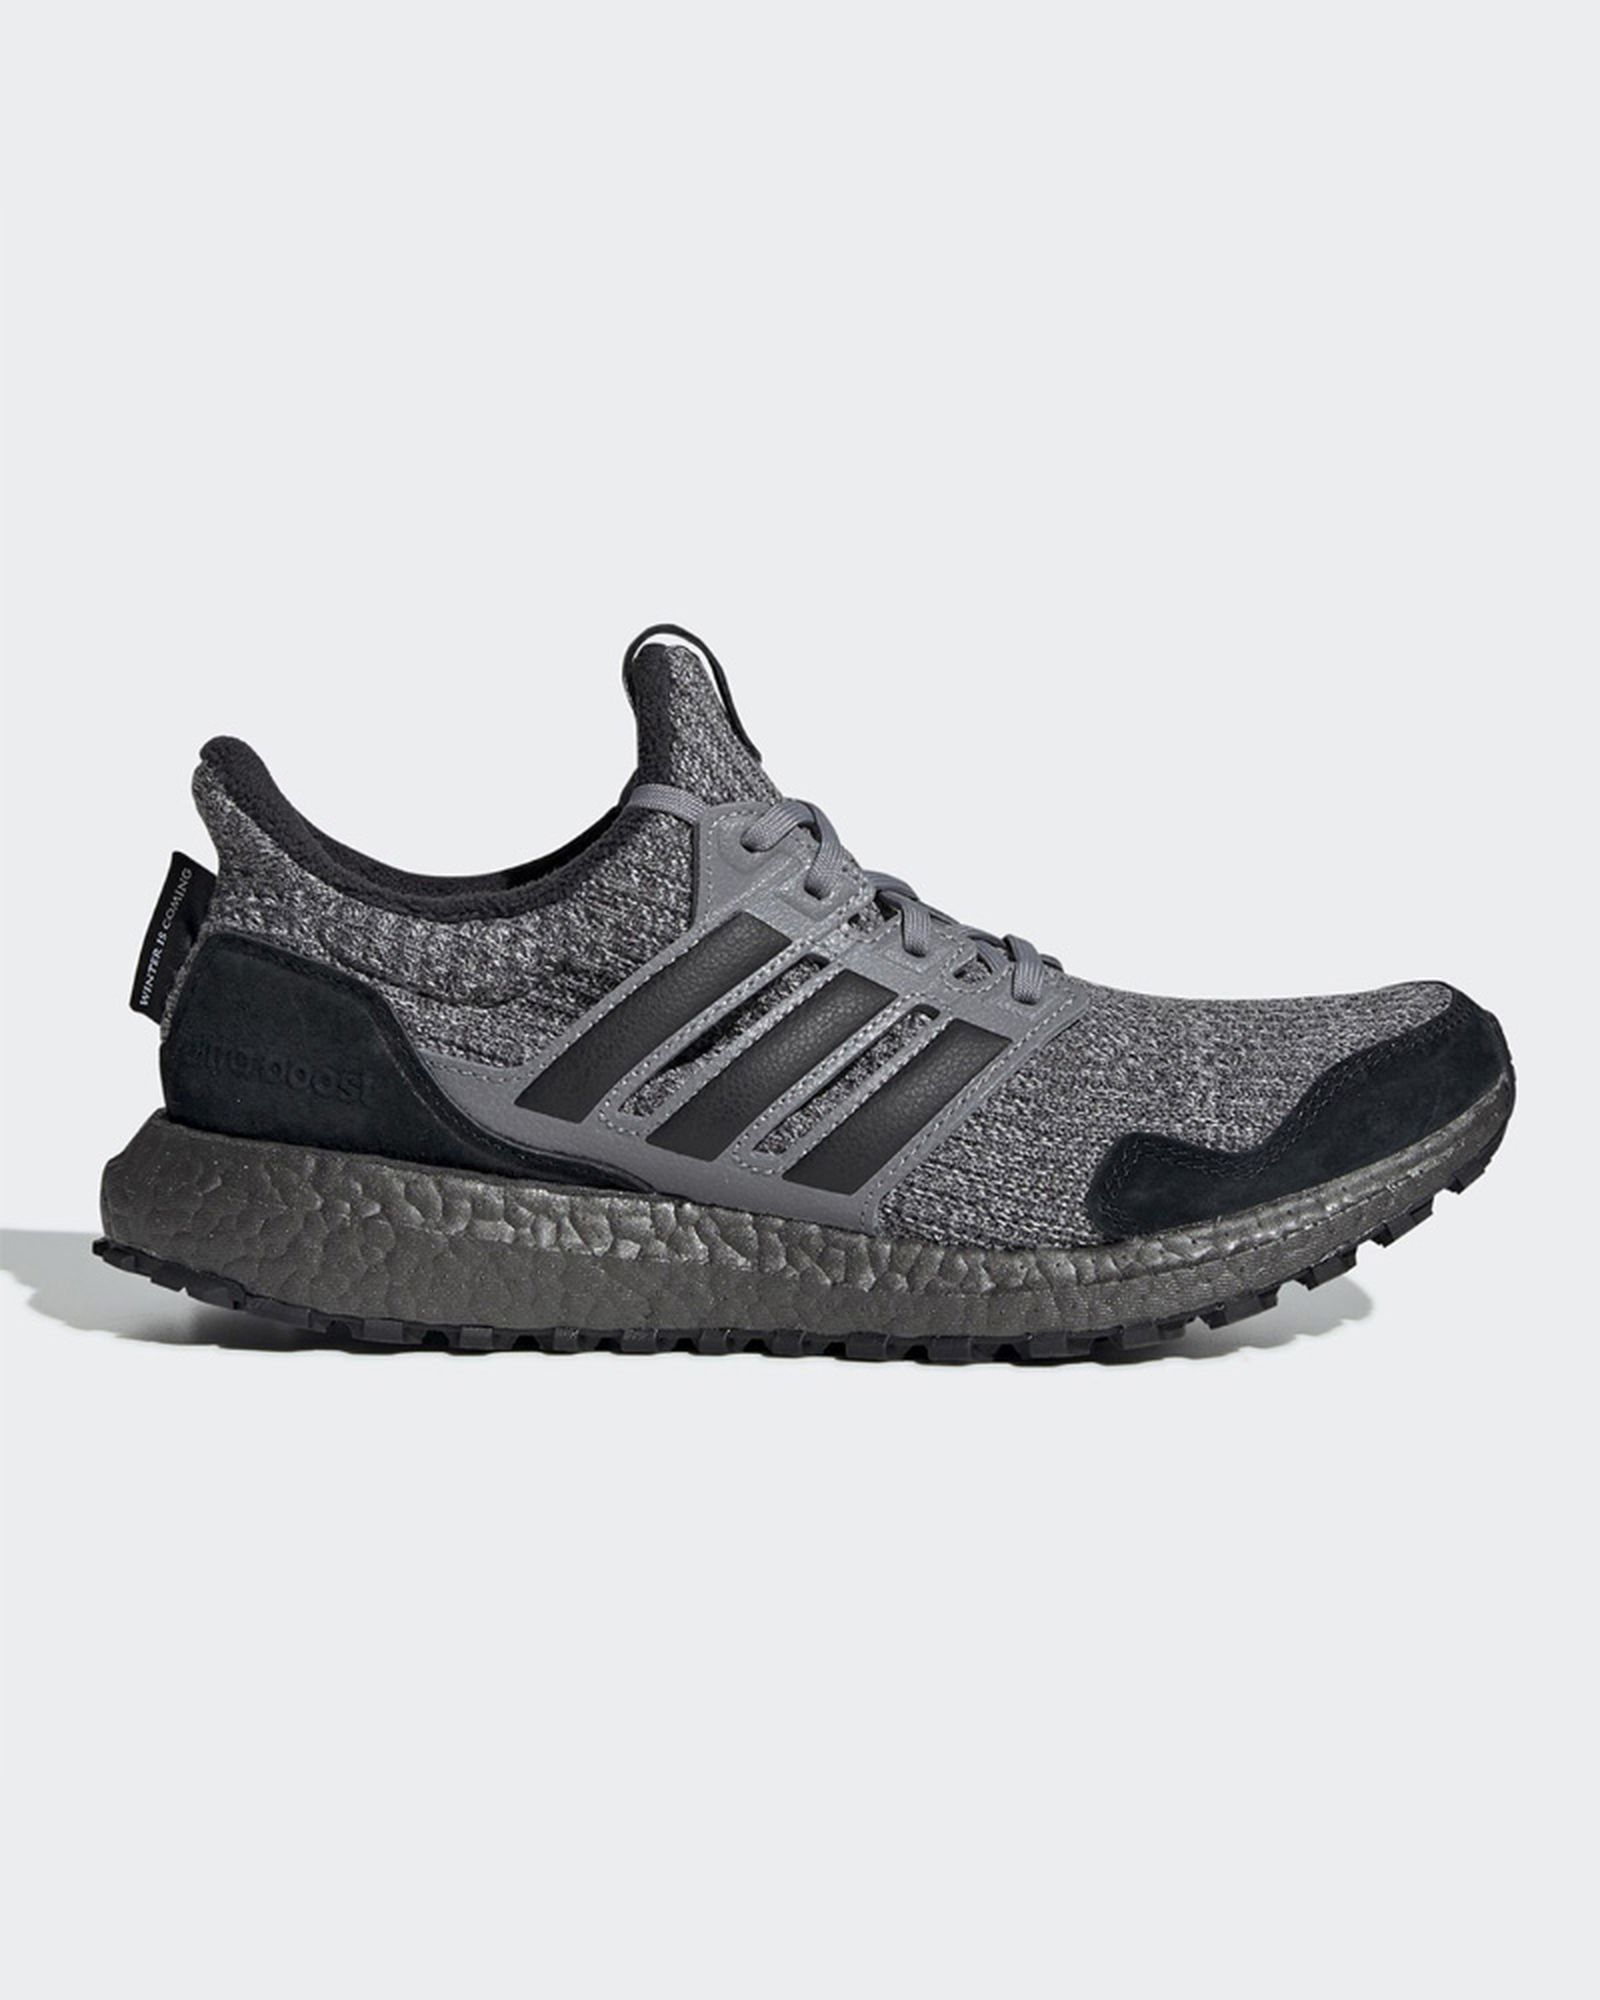 game-of-thrones-adidas-ultra-boost-colorways-04